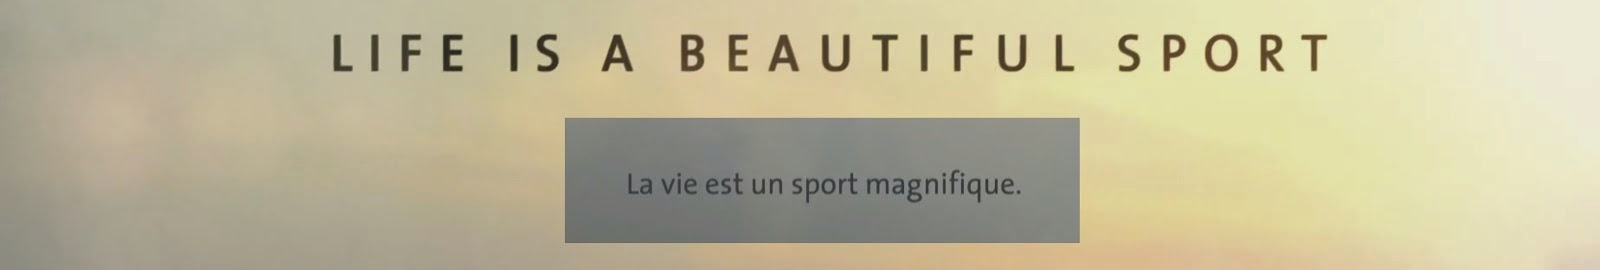 Life is a beautiful sport